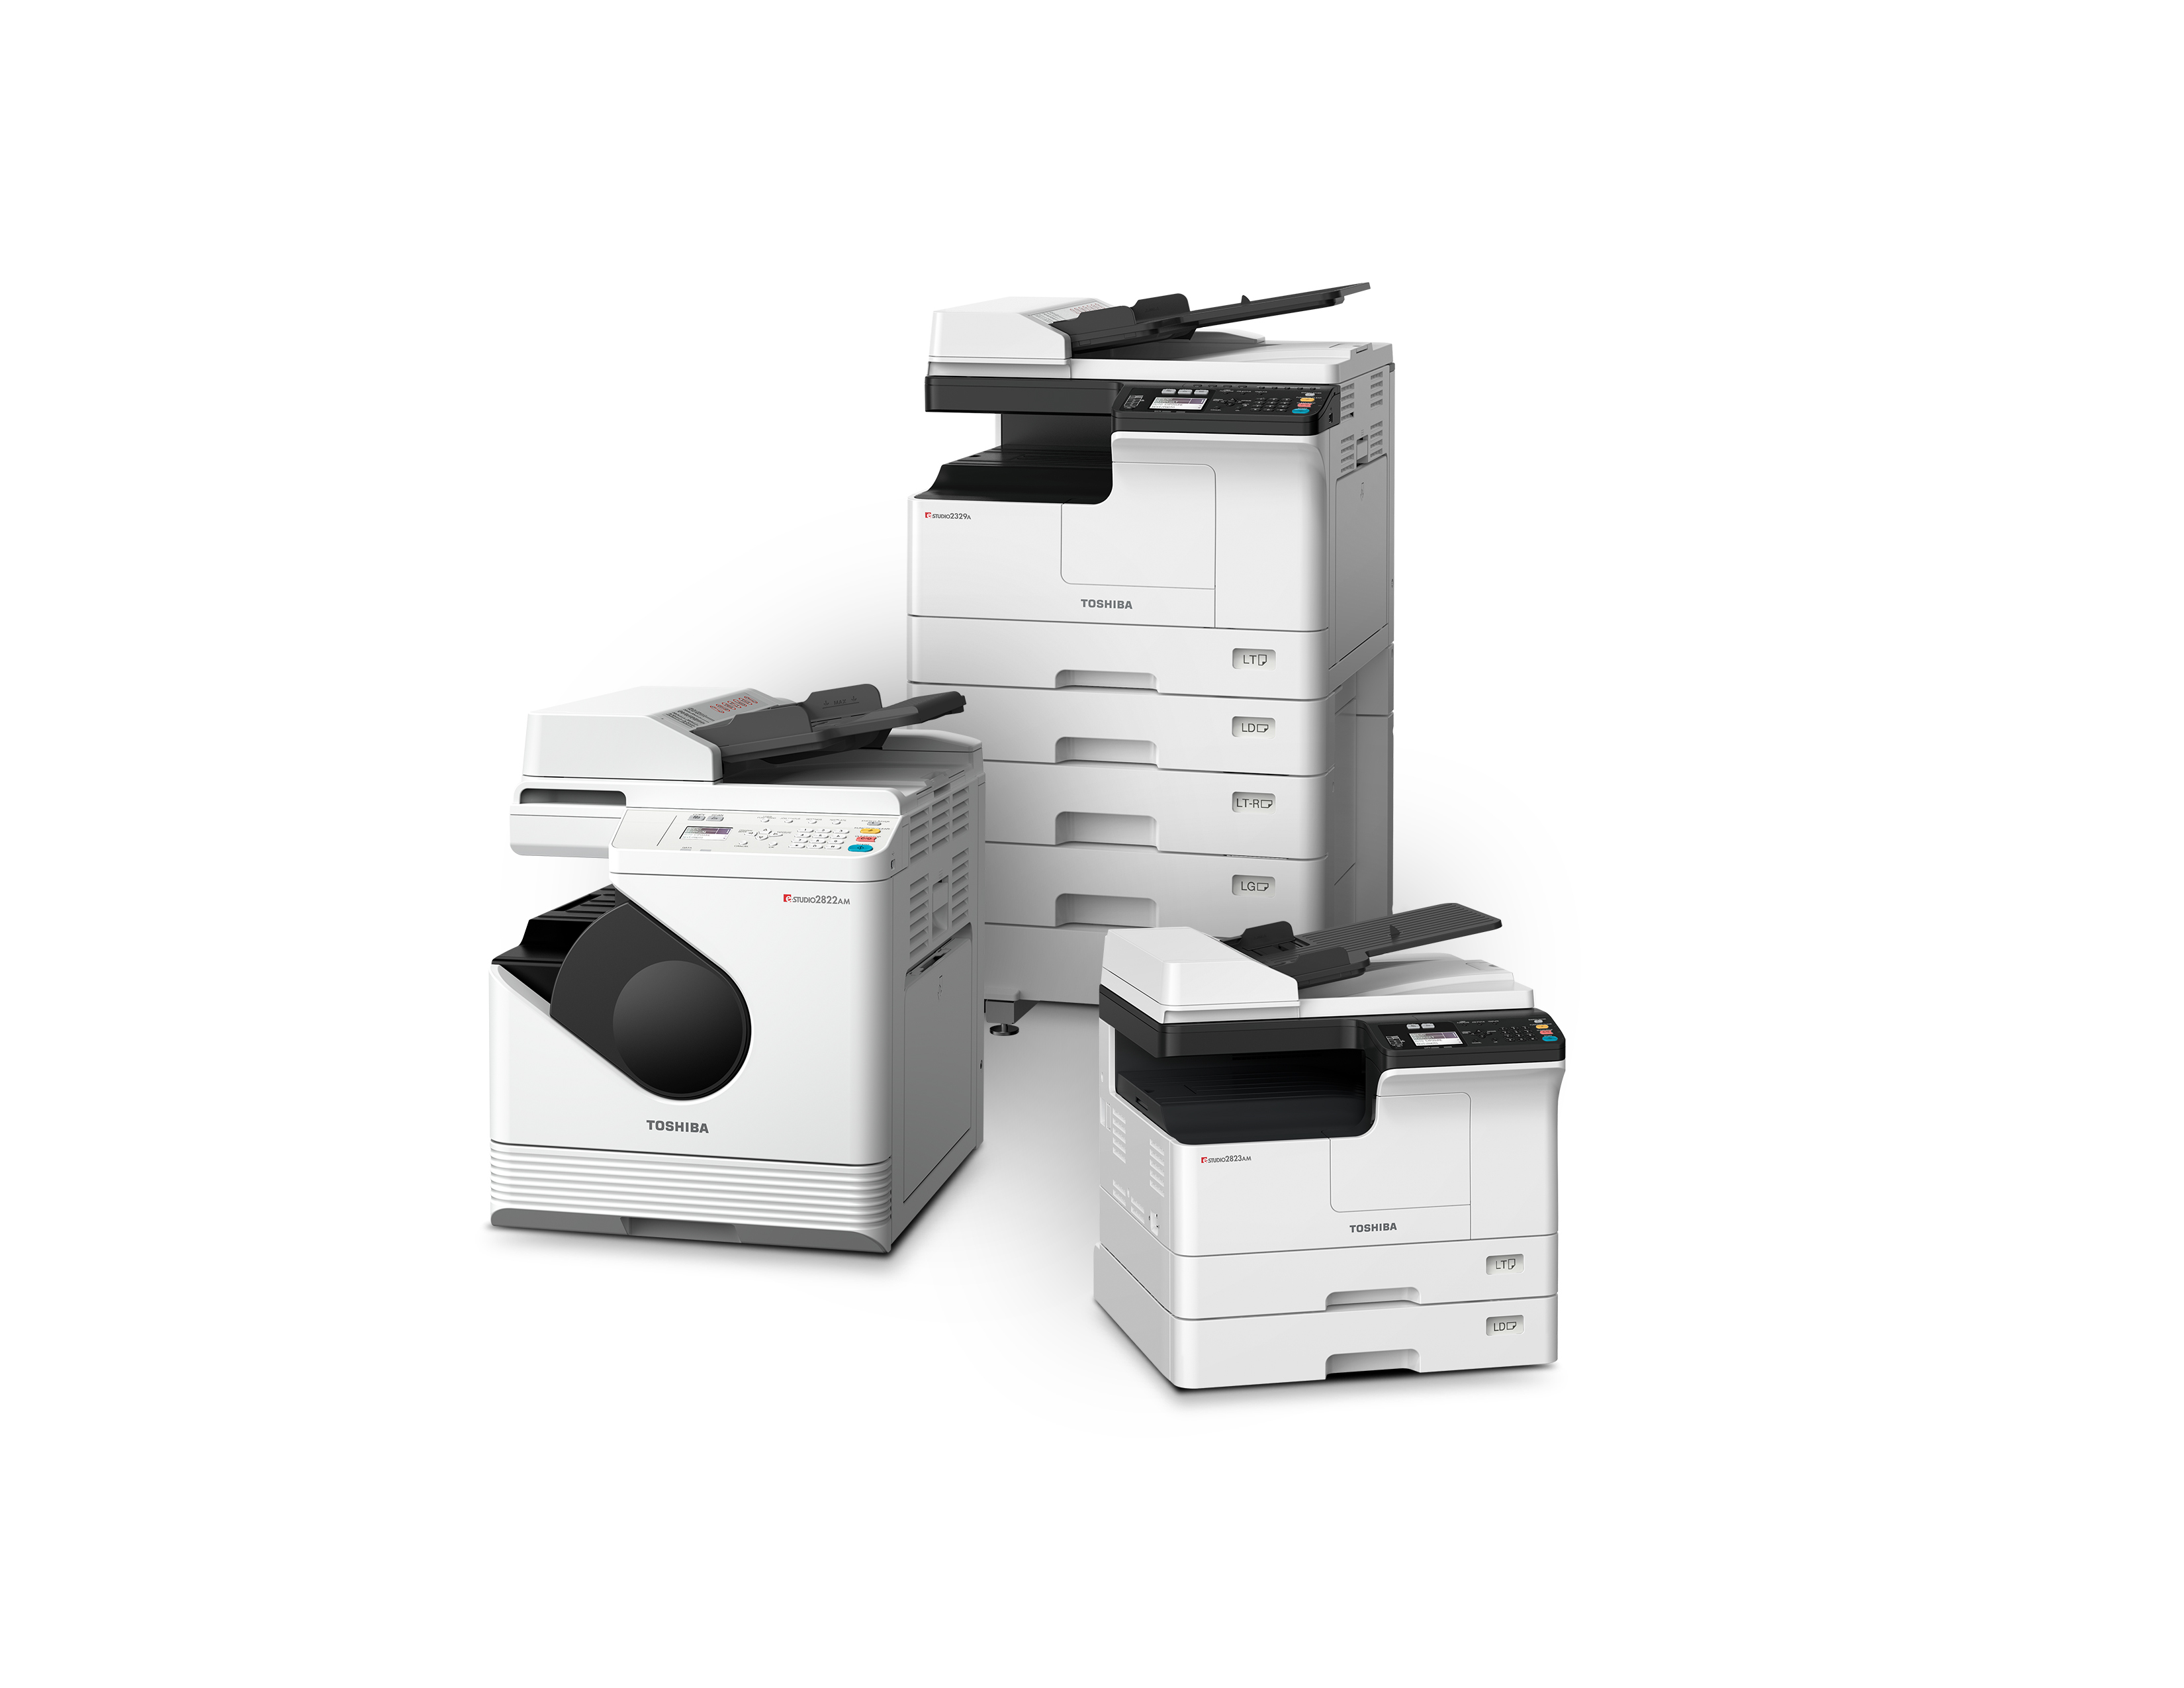 Image result for NEW TOSHIBA A3 MULTIFUNCTION PRINTER FAMILY IDEAL FOR SMALL-TO-MEDIUM BUSINESSES Monochrome Print Fleet Couples Ledger-size Capability in a Compact Footprint Giving SMBs the Performance They Demand, While Being Easy on Space